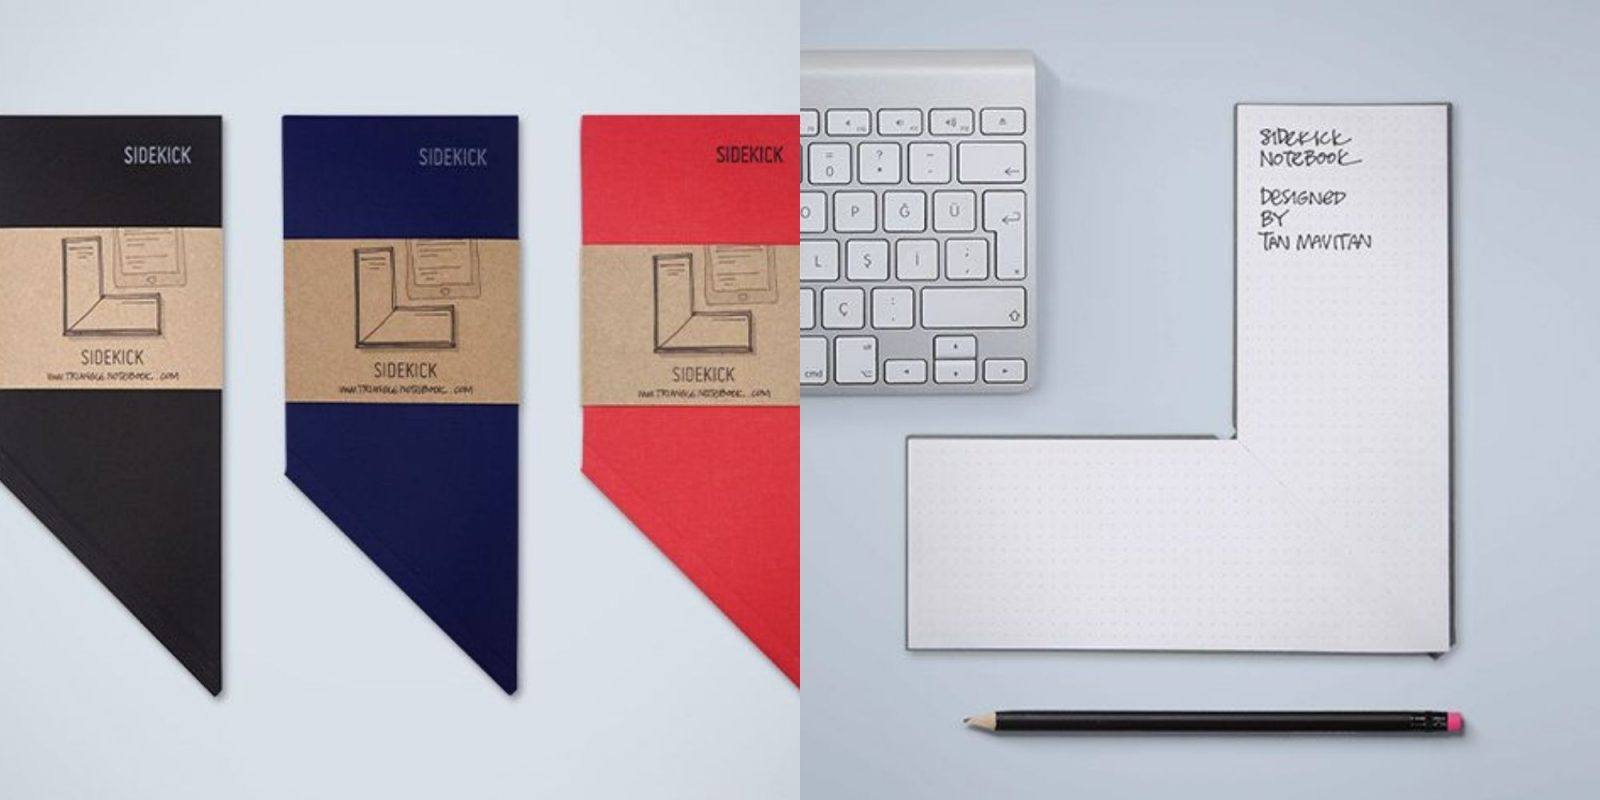 This notebook fits perfectly around your keyboard: two-packs now $42